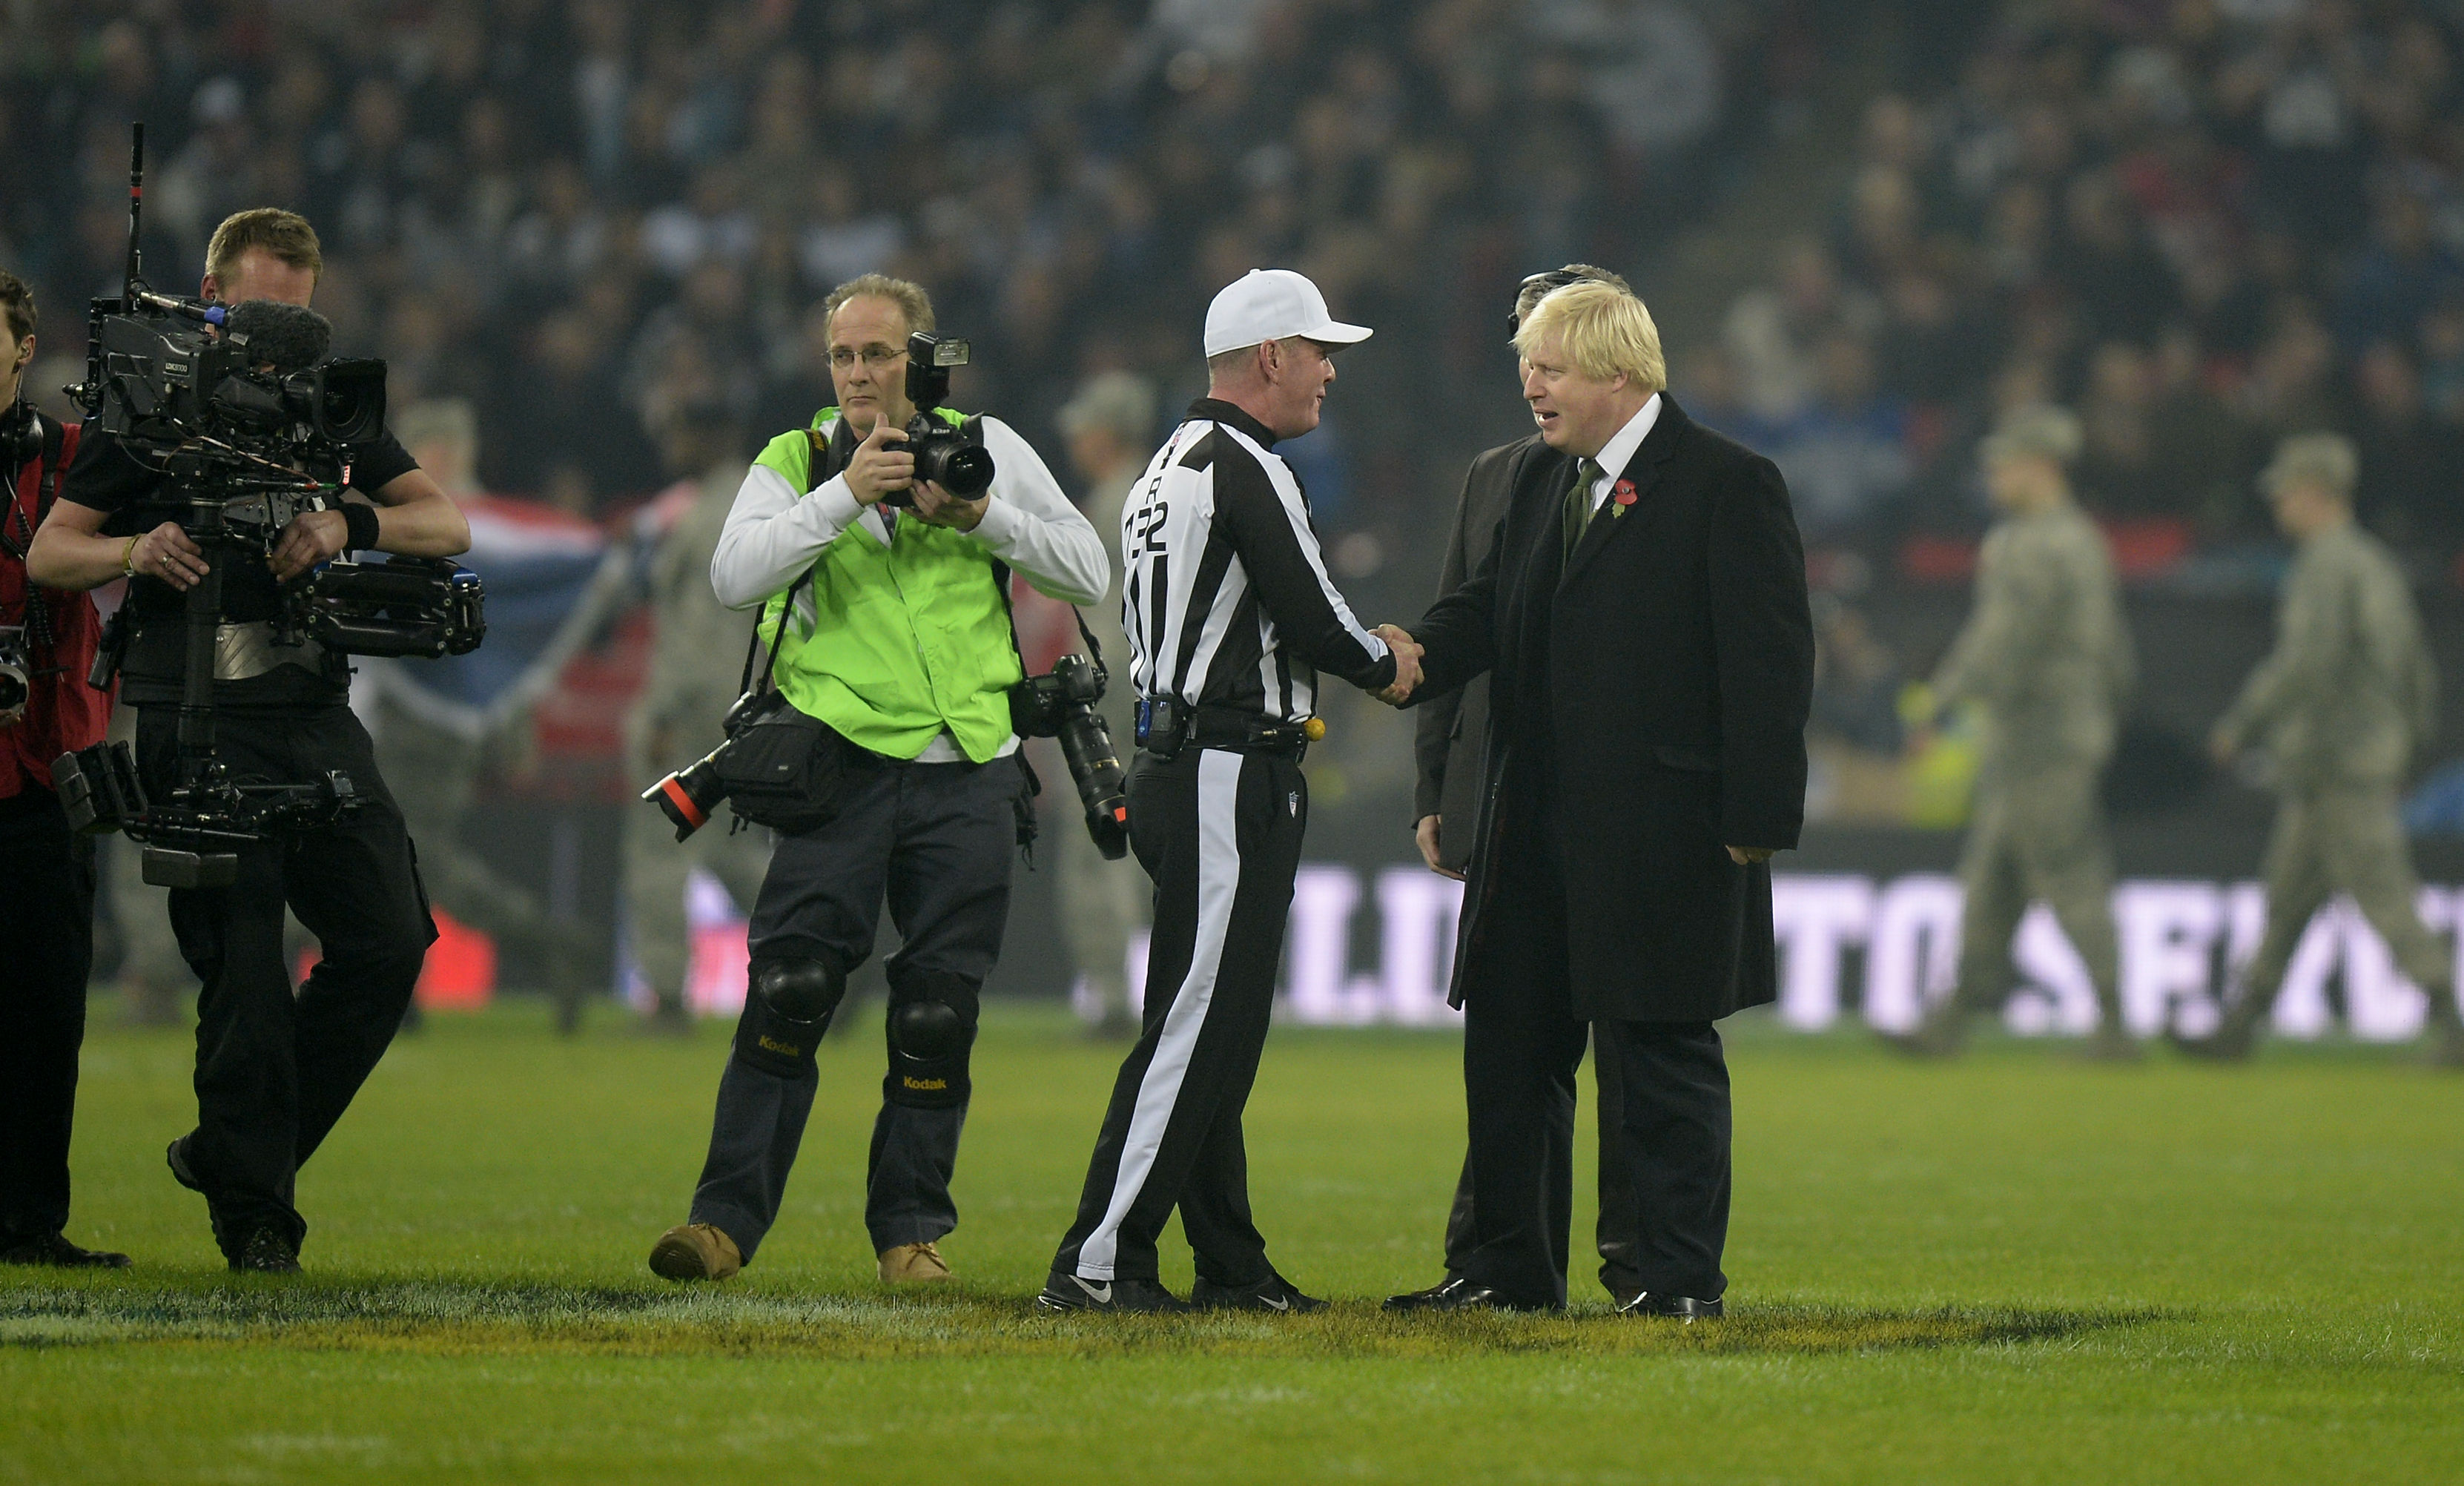 London Mayor Boris Johnson takes to the pitch before the NFL International match at Wembley Stadium, London. Picture date: Sunday November 9, 2014. See PA story GRIDIRON NFL. Photo credit should read: Andrew Matthews/PA Wire.